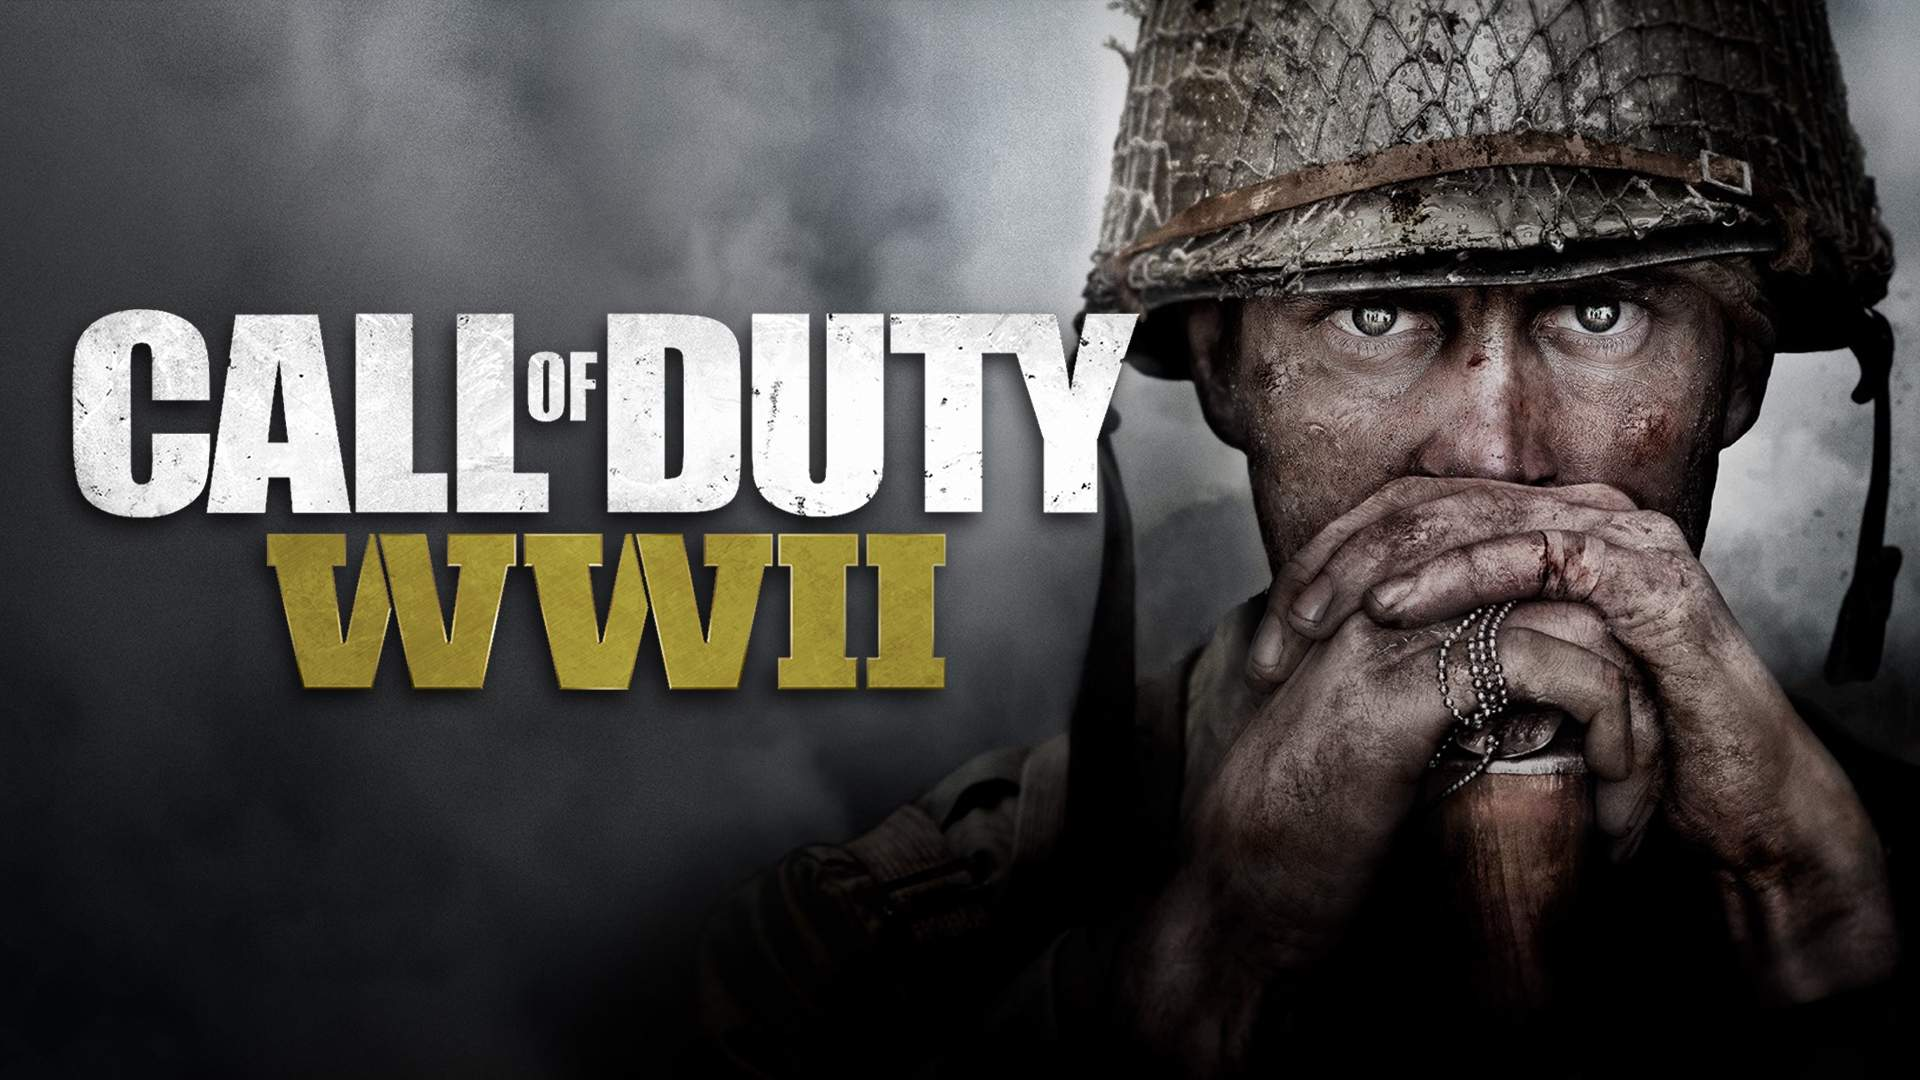 call_of_duty_WWII_wallpaper_logo_nat_games